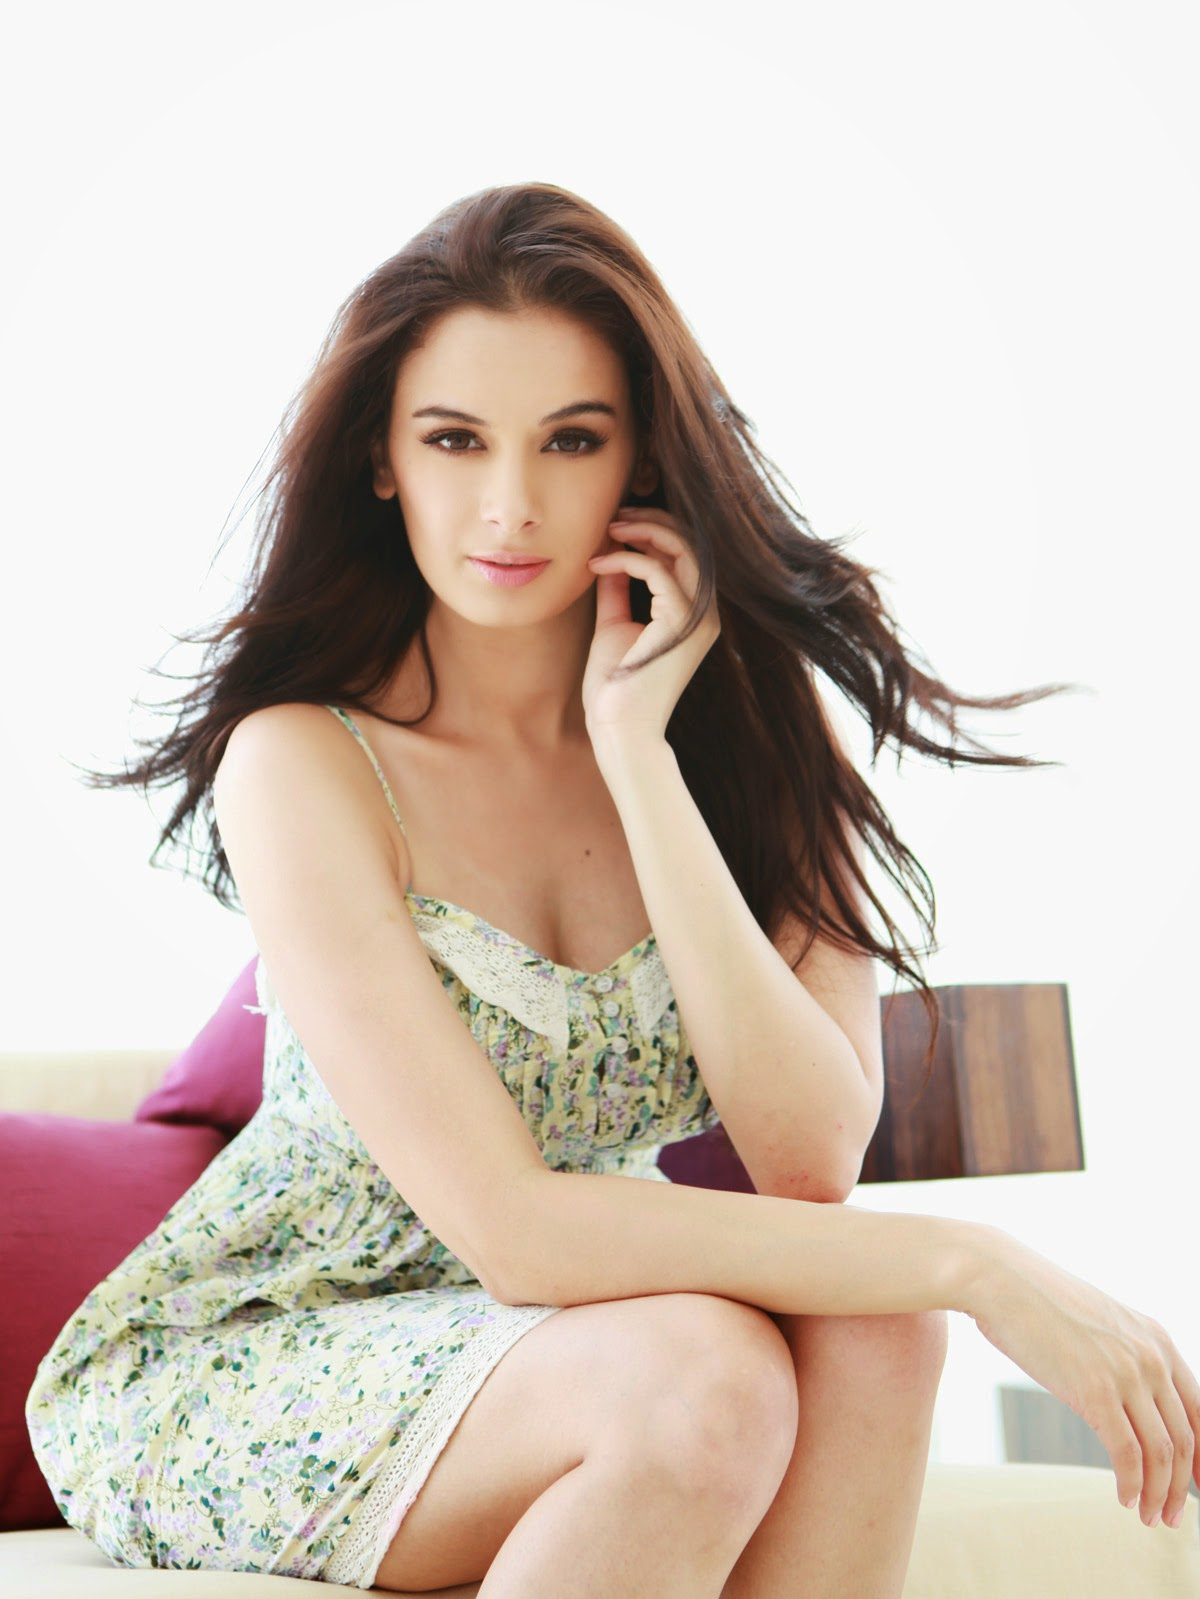 nude Wallpaper of Evelyn Sharma In Bikini